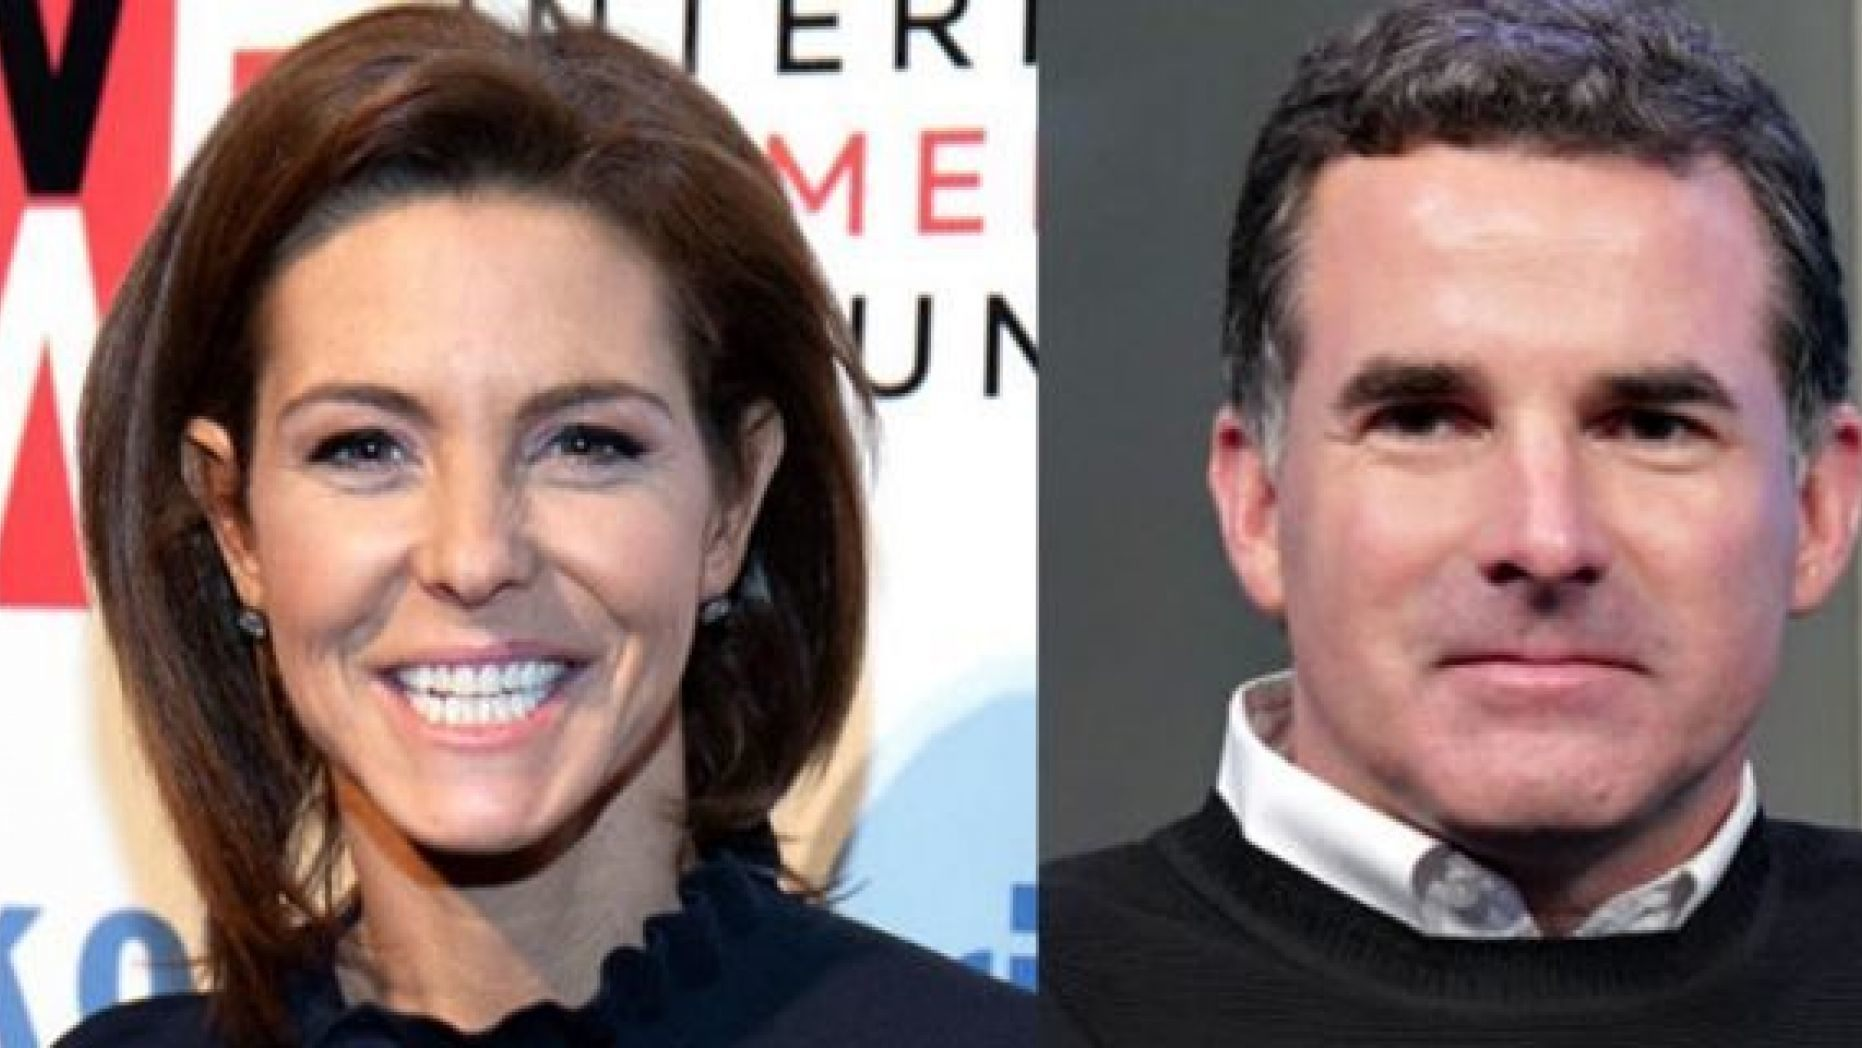 MSNBC host Stephanie Ruhle's relationship with Under Armour CEO Kevin Plank was examined by The Wall Street Journal.